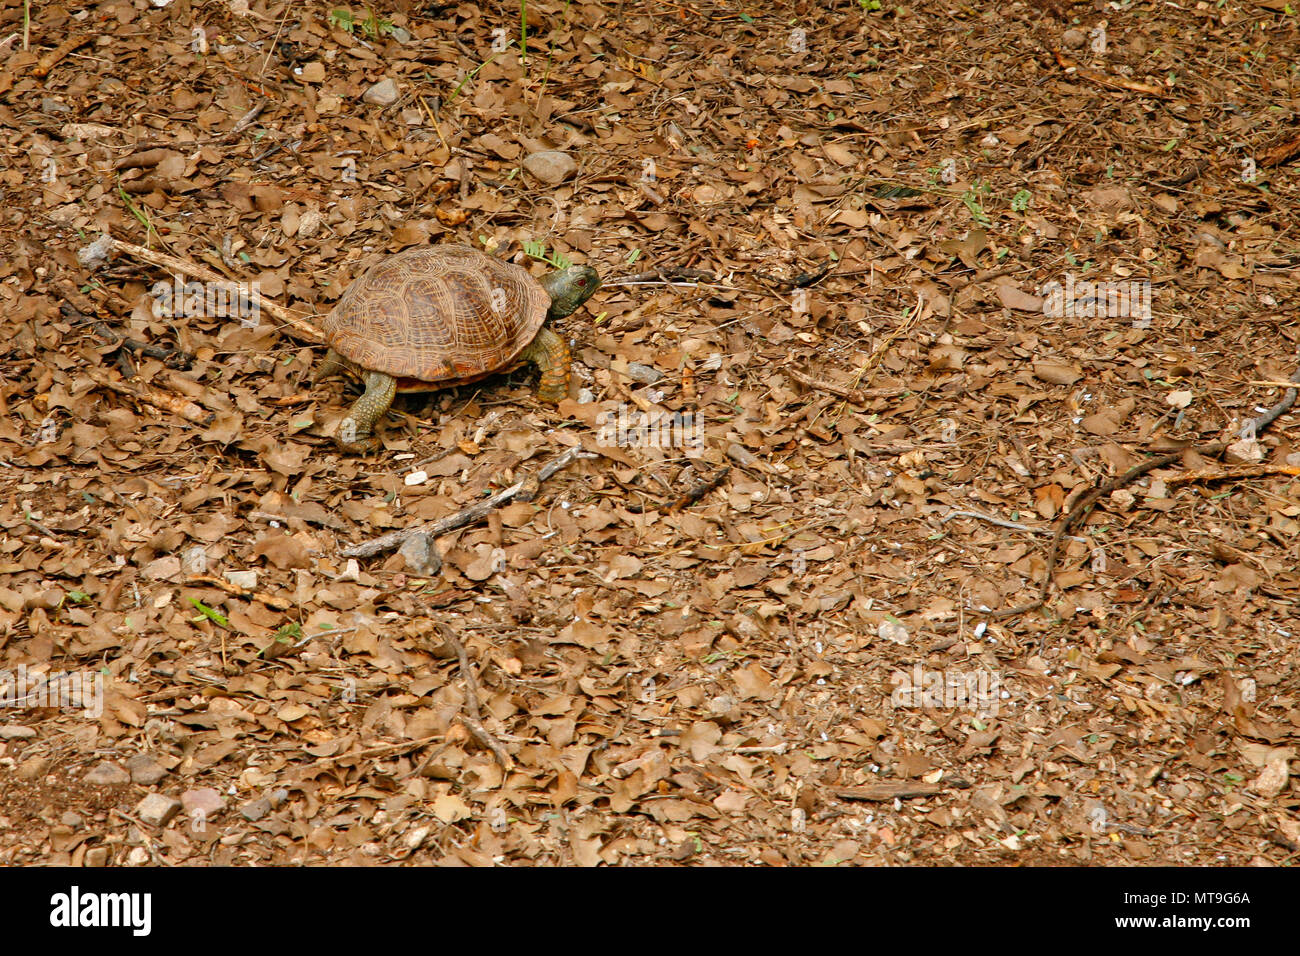 desert tortoise in the sand walking, slow-moving land-dwelling reptile with a large dome-shaped shel, Testudinidae - Stock Image